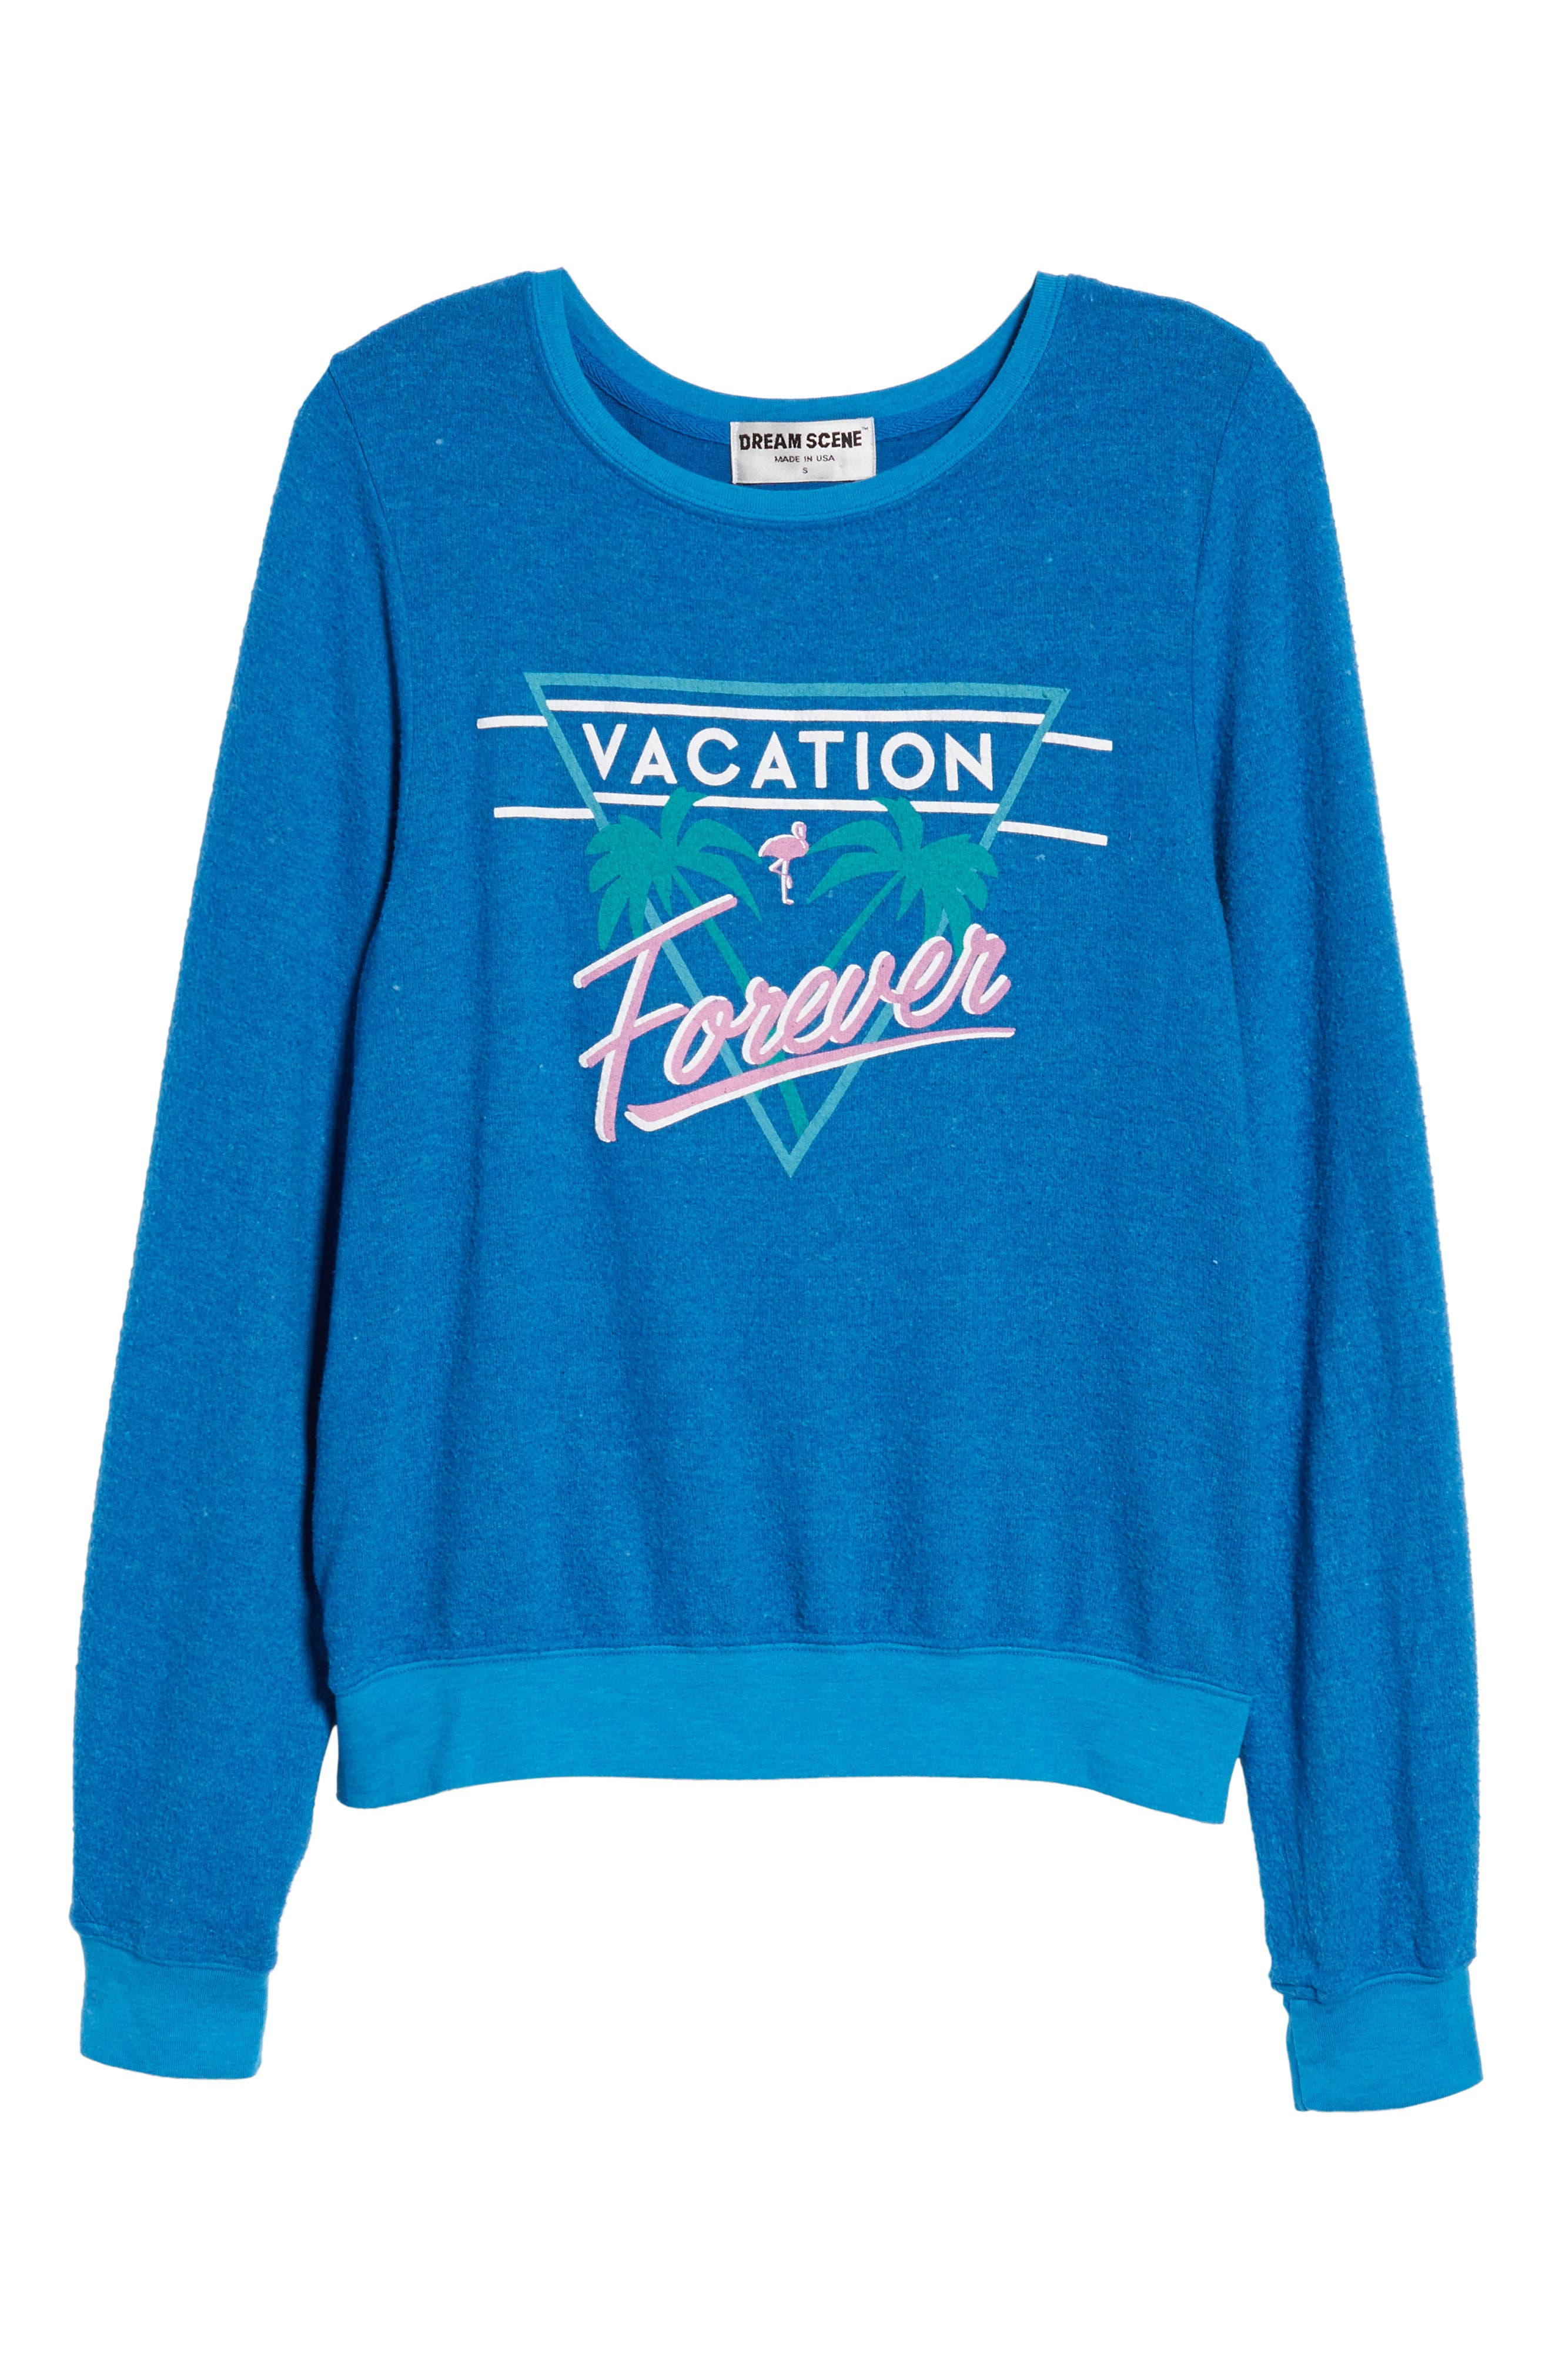 Vacation Forever Sweatshirt,                             Alternate thumbnail 6, color,                             401